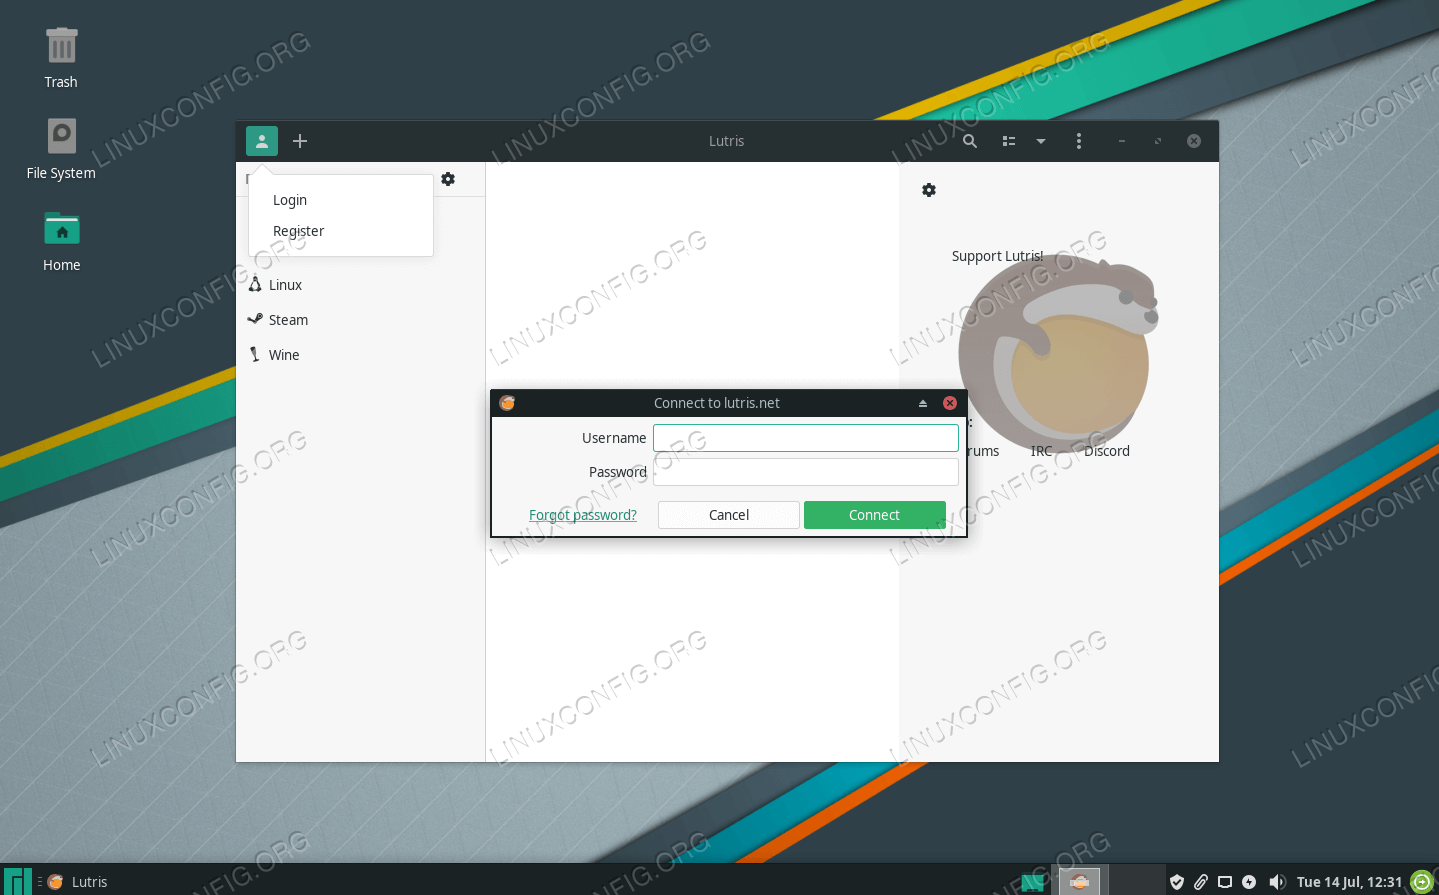 Connect to Lutris with your account credentials